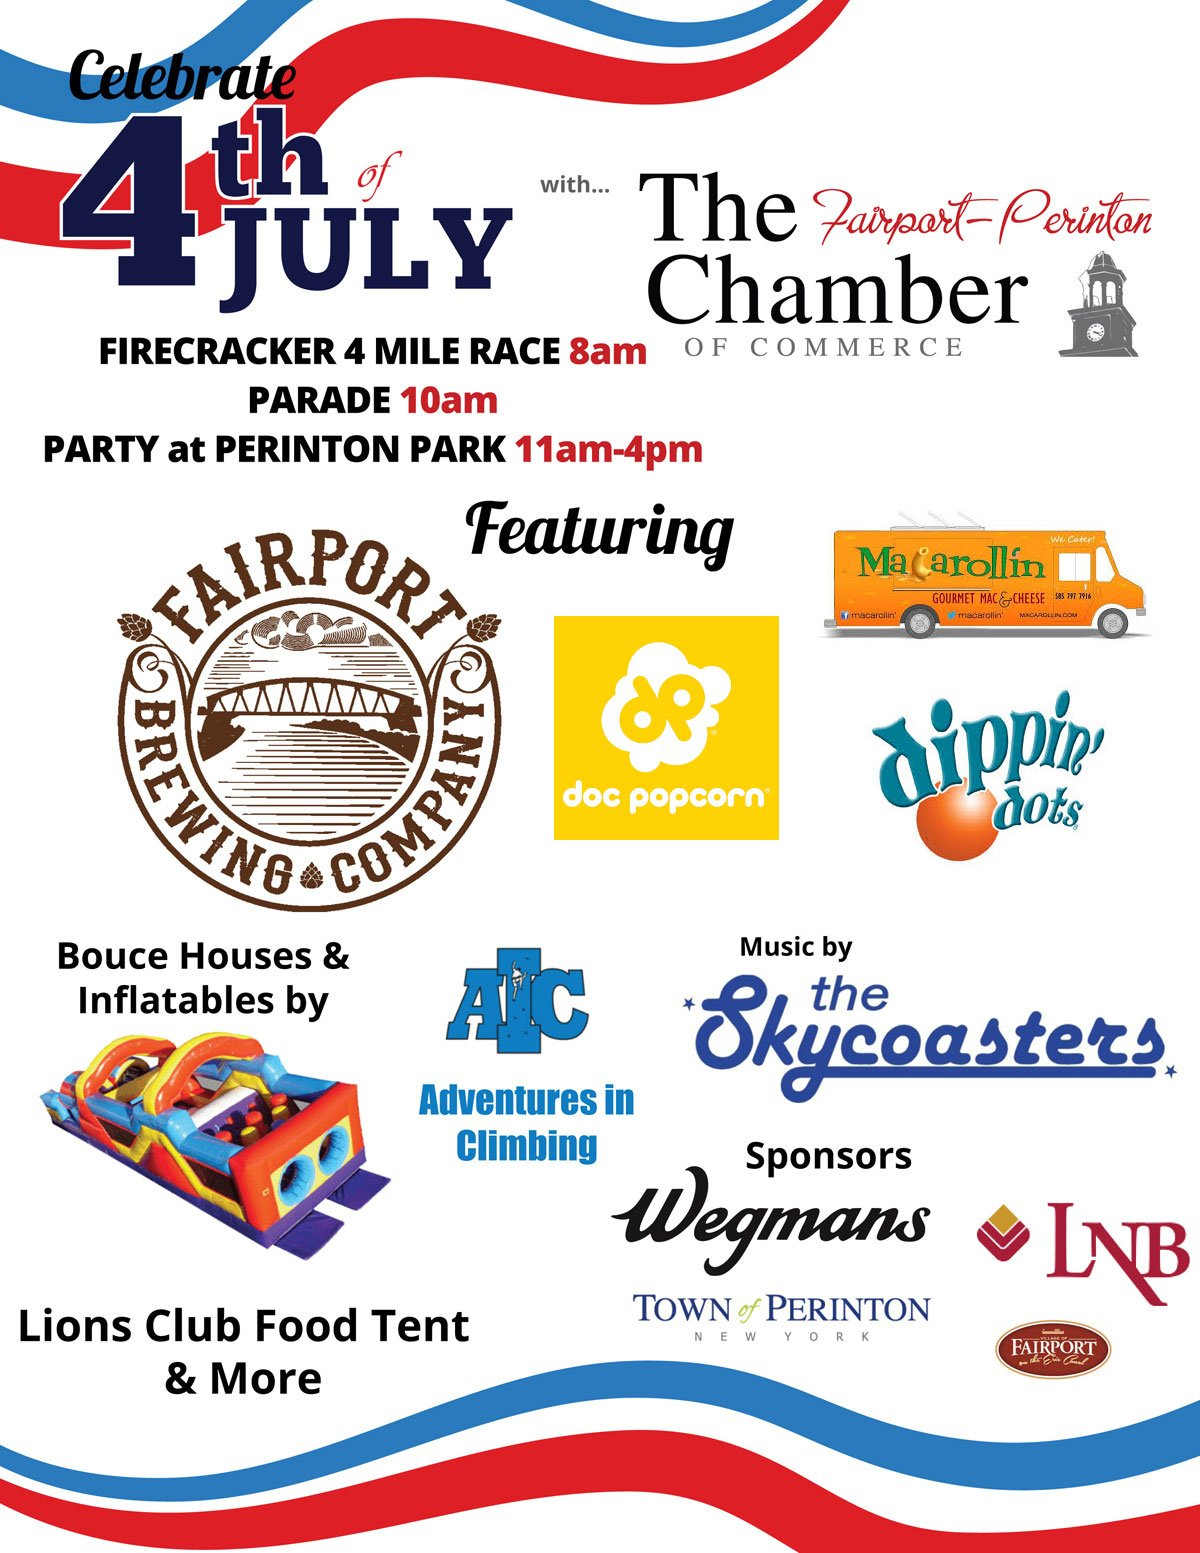 July 4th, 2019 Parade & Party in the Park